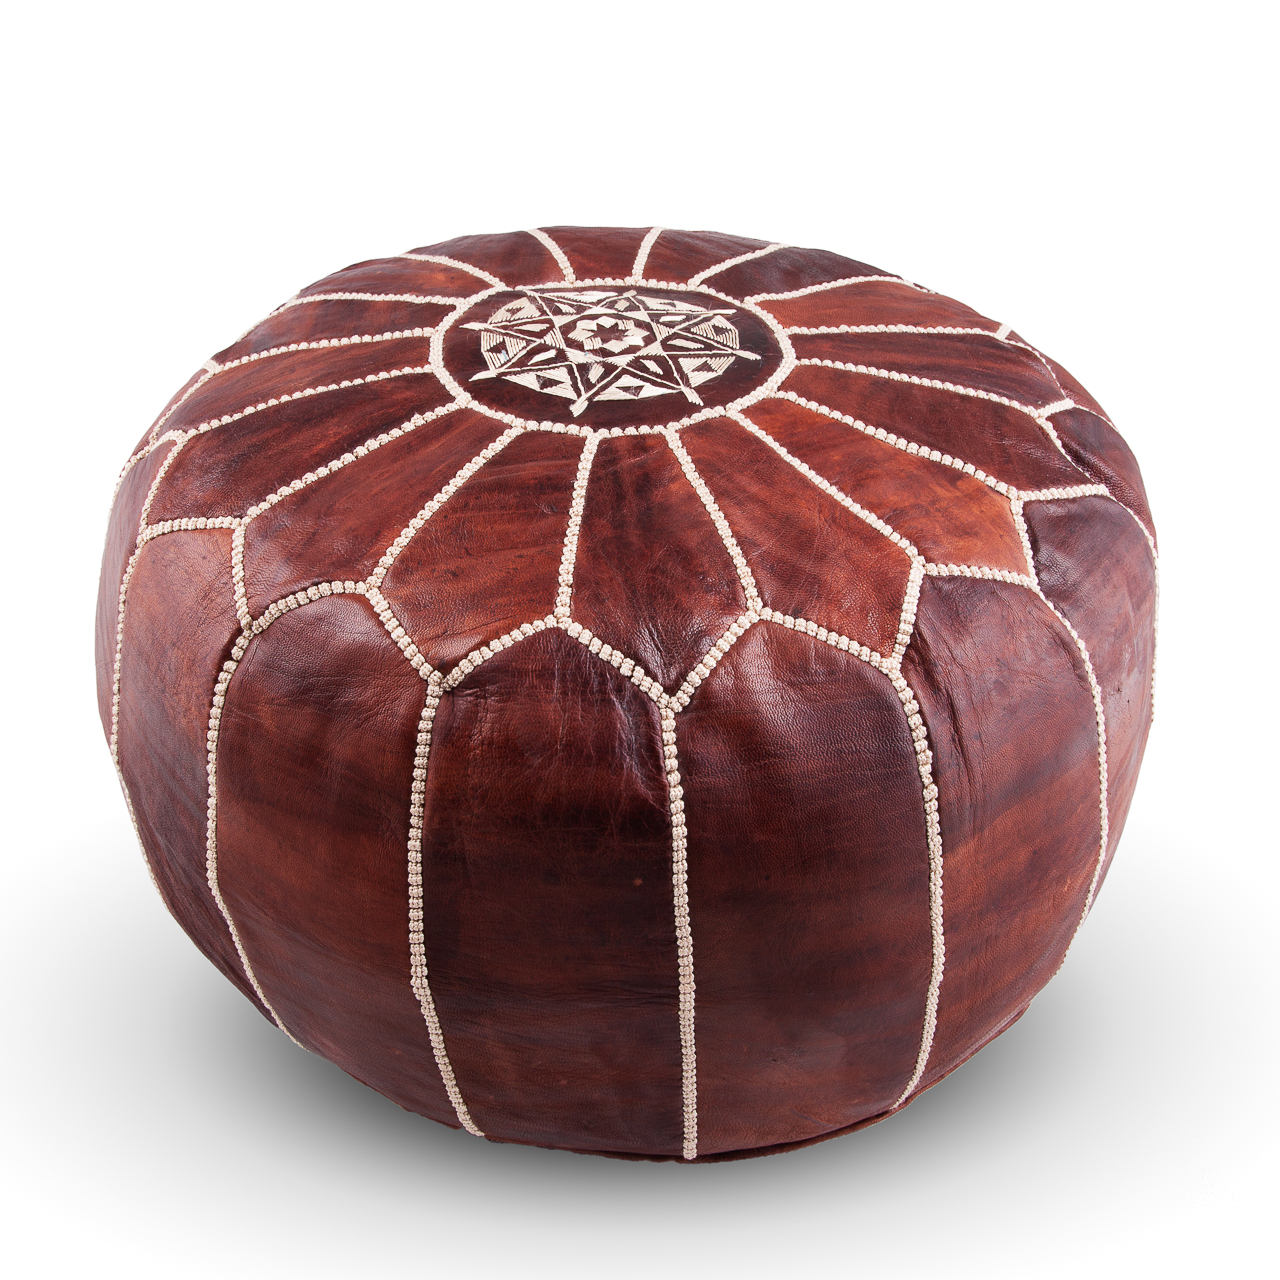 Square handcrafted moroccan leather pouf dark tan pouf pouffe ottoman - Moroccan Leather Pouffe Pouf Leather Pouf Ottoman